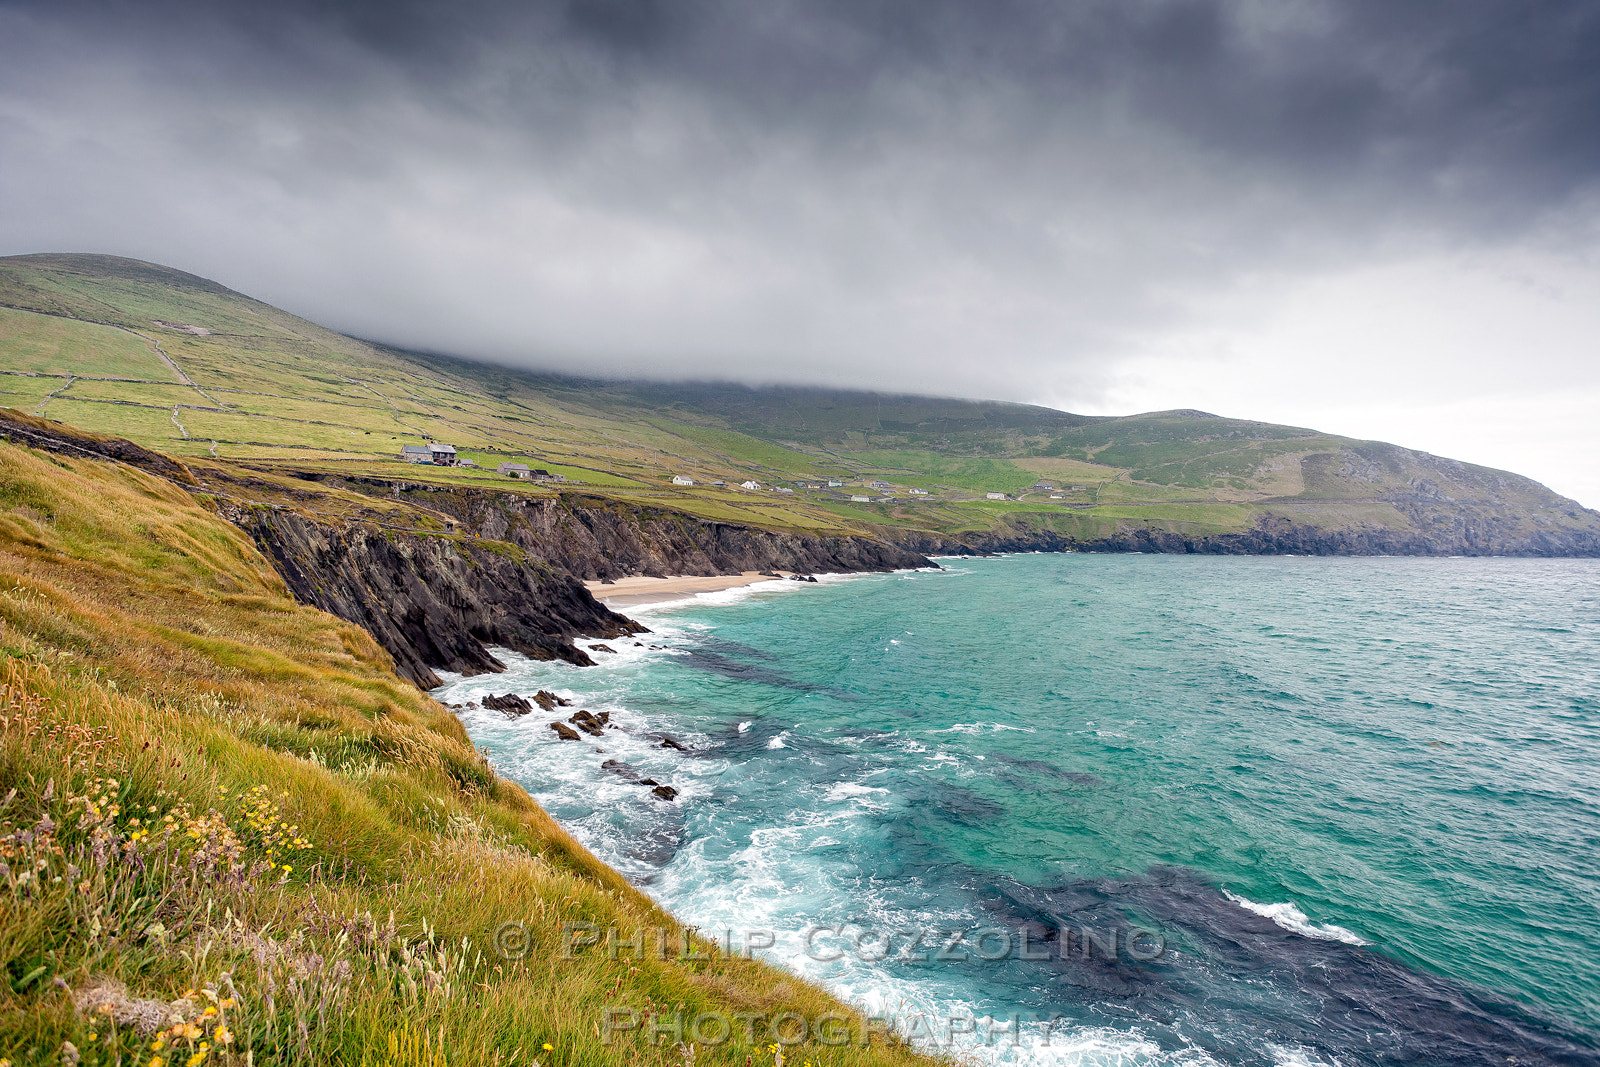 Photograph Dingle by Philip Cozzolino on 500px